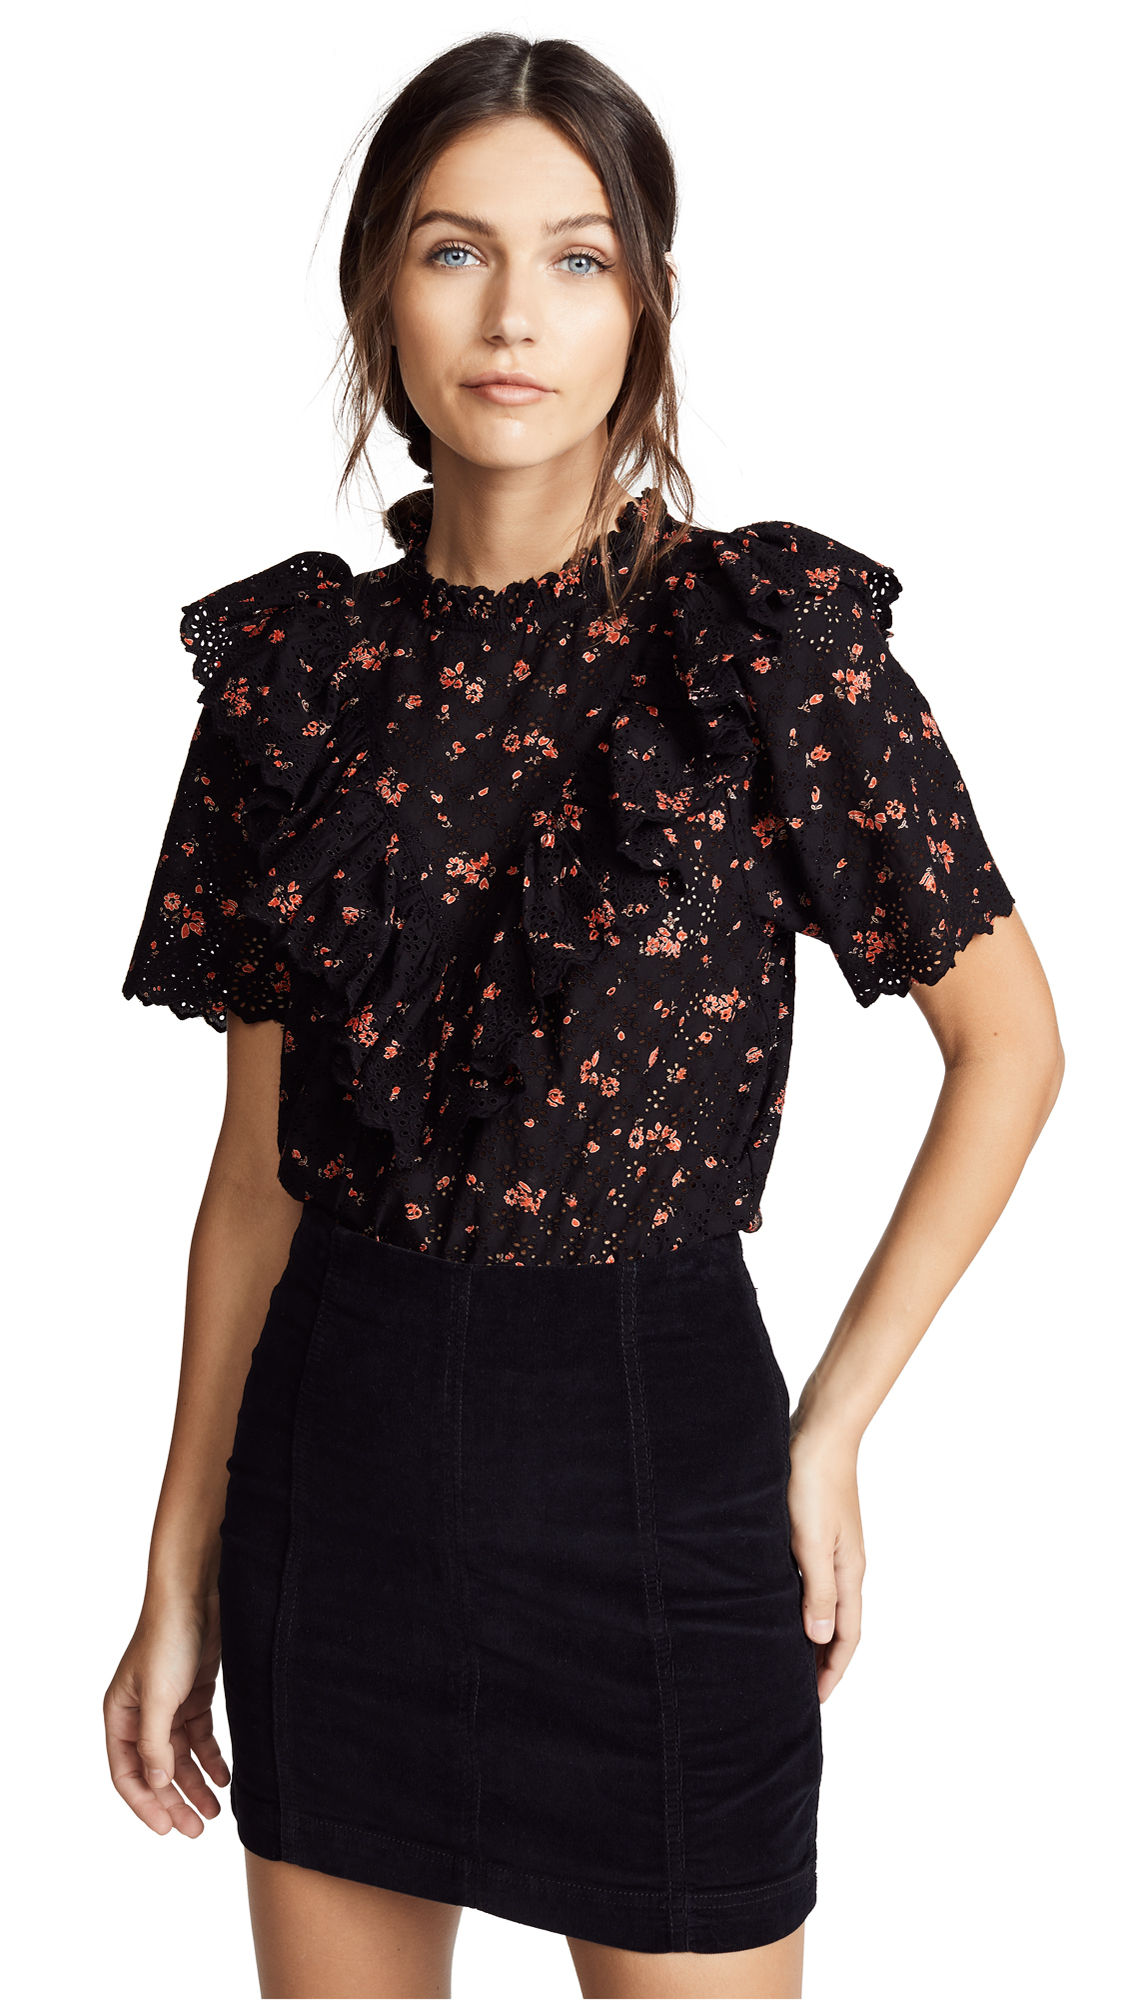 Ulla Johnson Choux Top In Noir Floral